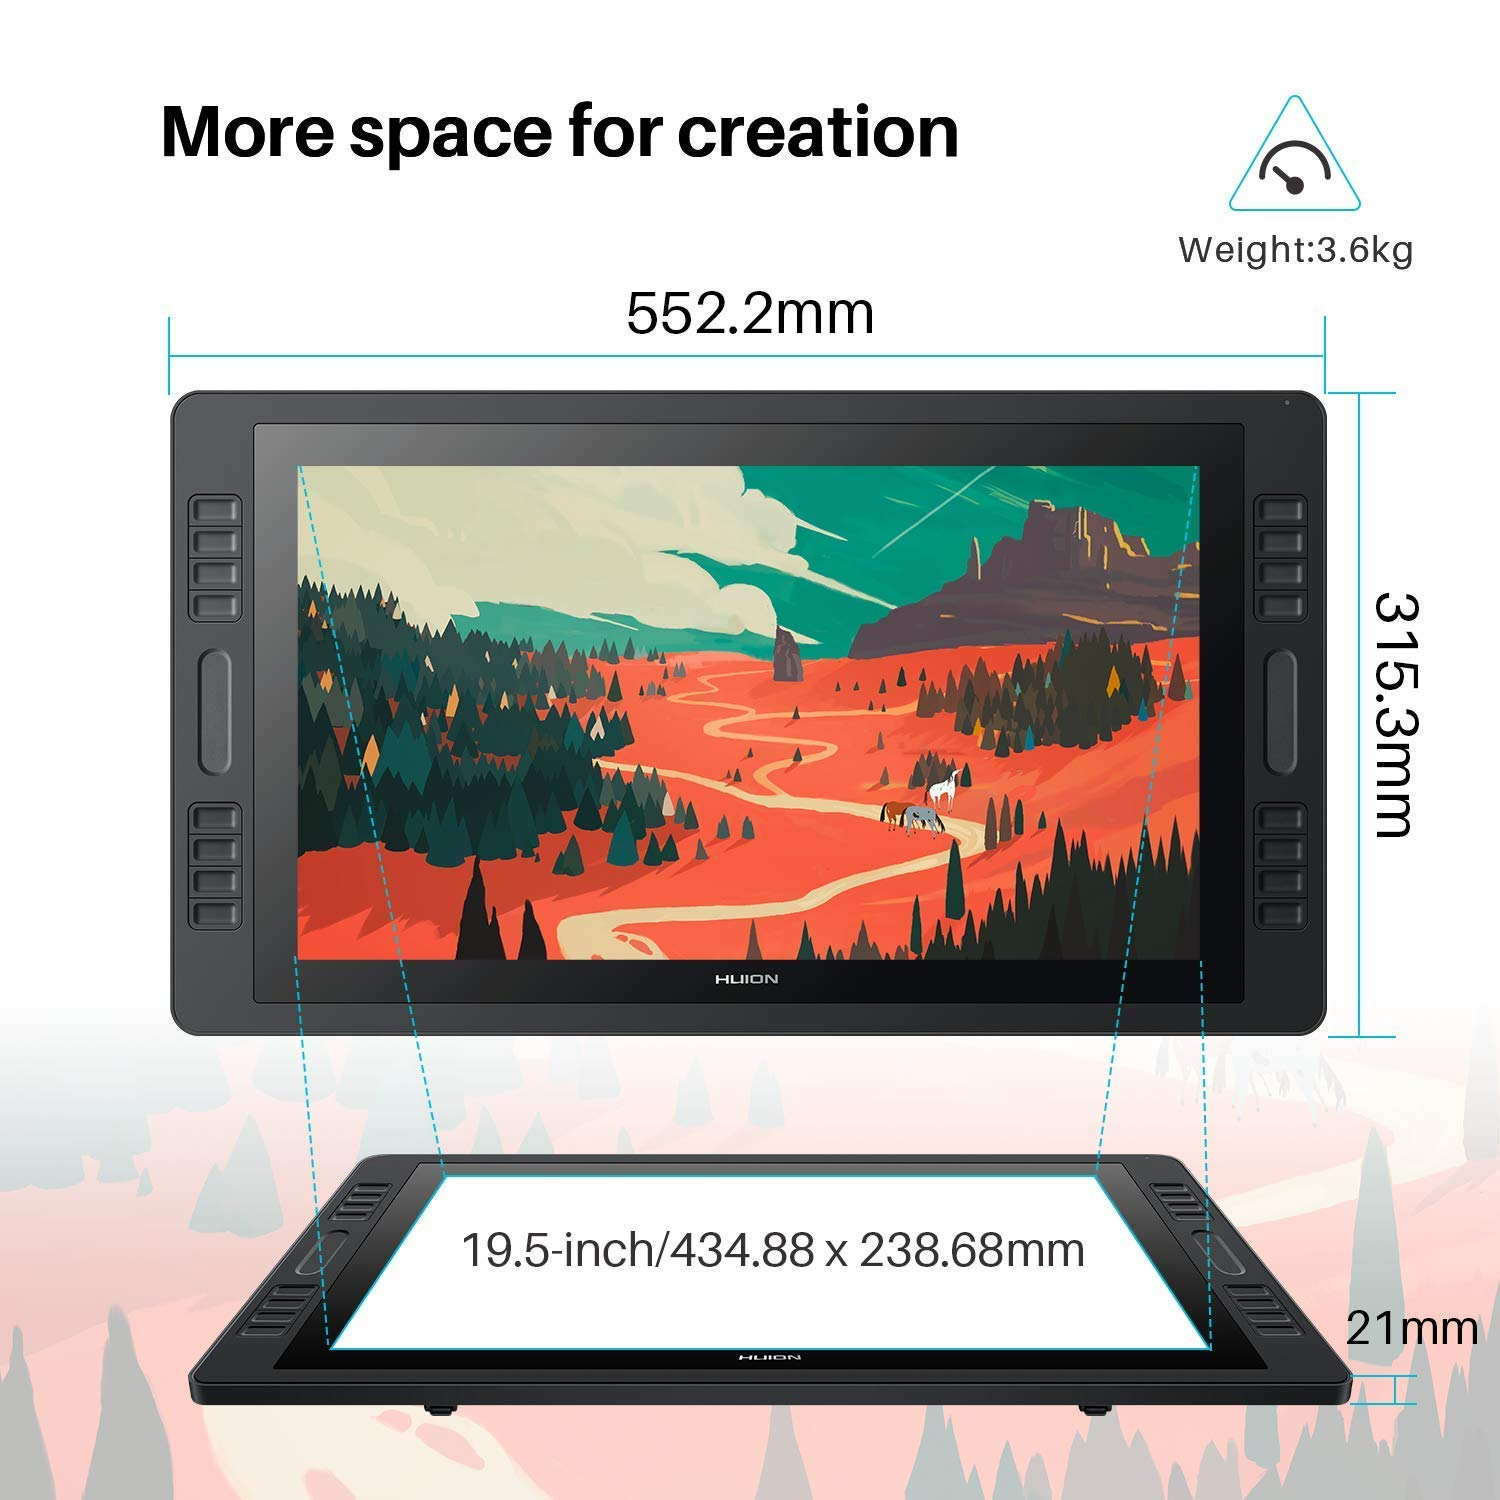 HUION Graphic Drawing Tablet Inspiroy Q11K V2 with Stylus Tilt Function Battery-Free Stylus 8192 Pen Pressure 11 inch Q11K V2